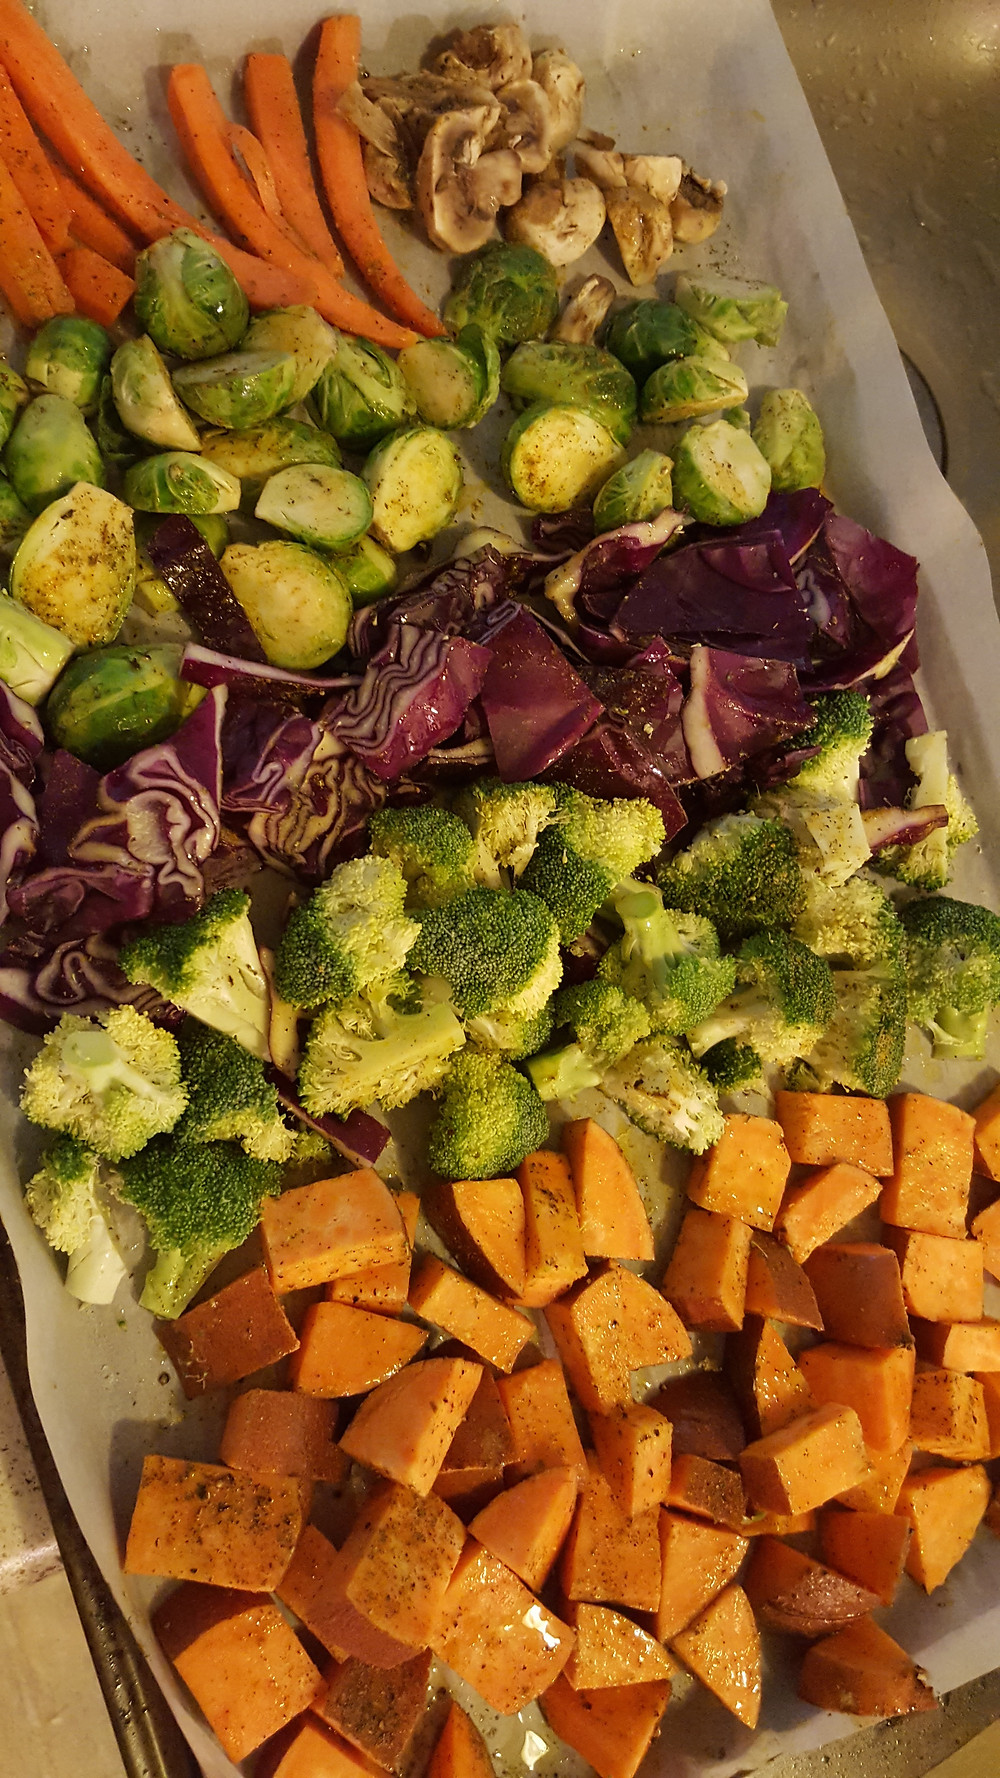 A sheet pan with roasted mixed vegetables.